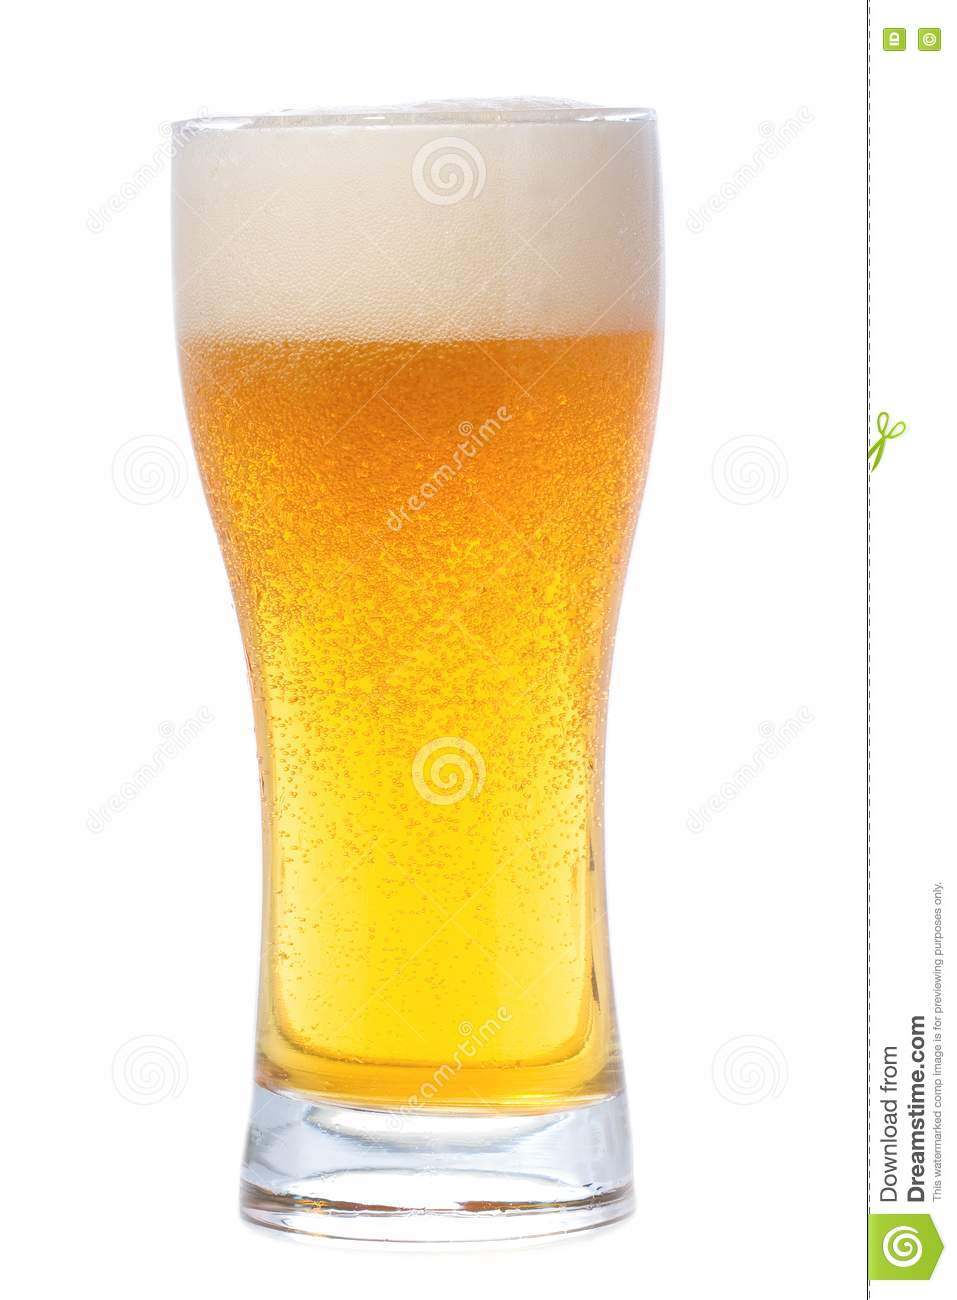 Glass Of Beer Royalty Free Stock Image - Image: 15435996